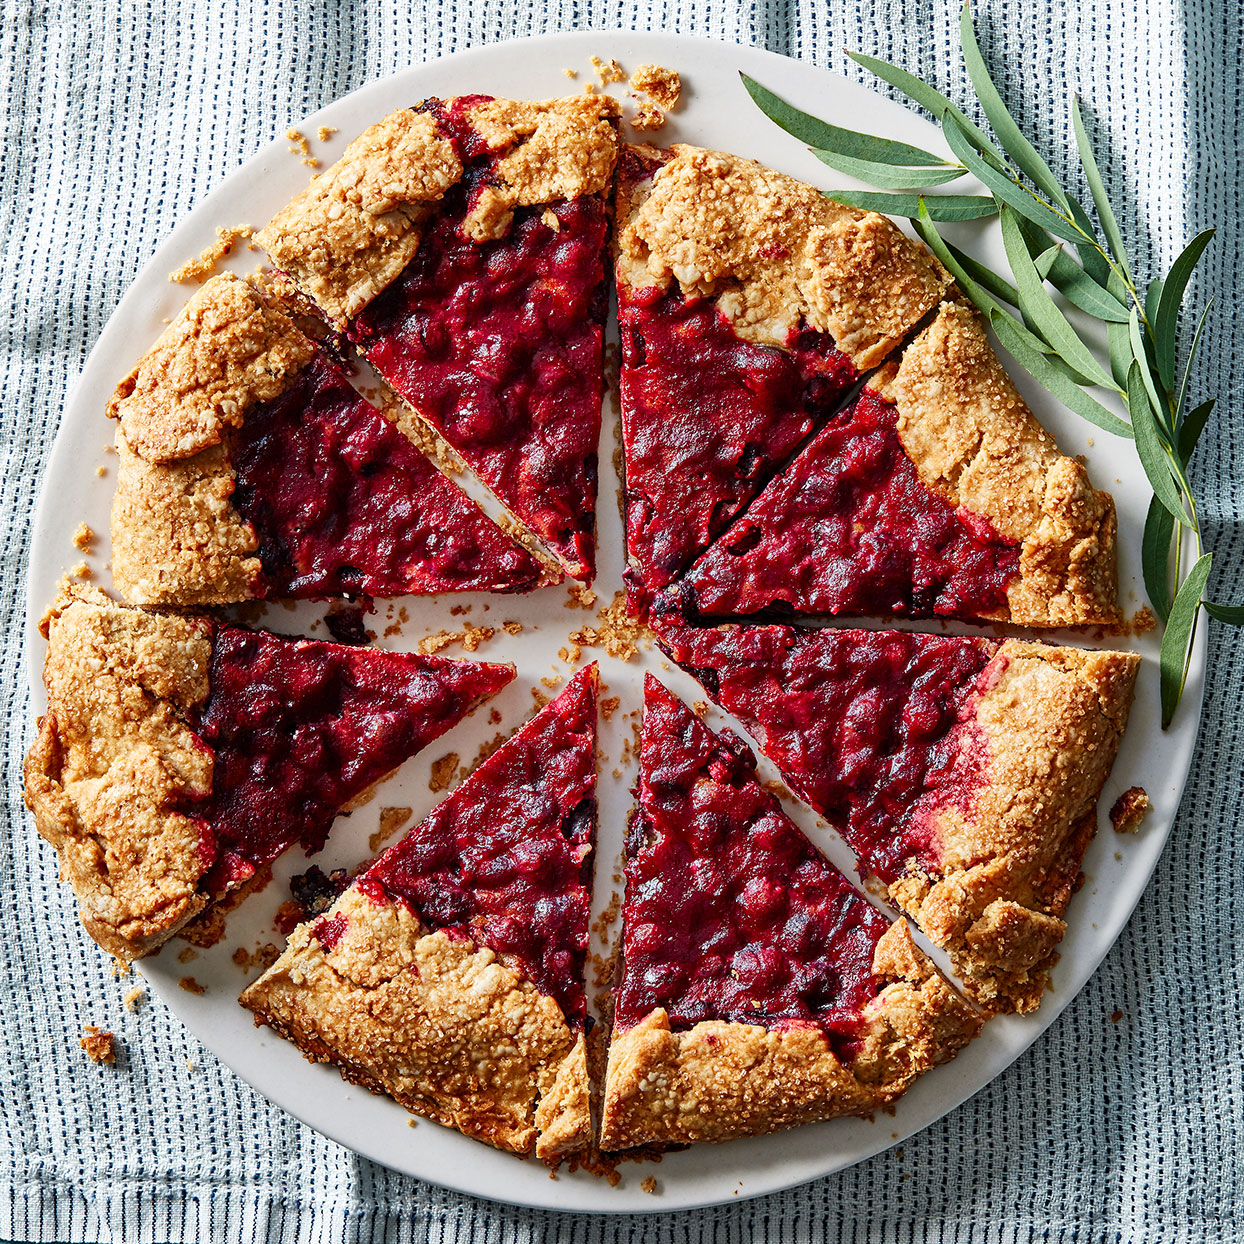 Expand your holiday desserts repertoire with this cranberry galette. Frangipane is a sweet pastry cream typically made with ground almonds; here we substitute ground sesame seeds in the form of tahini to give it a complex, earthy flavor.